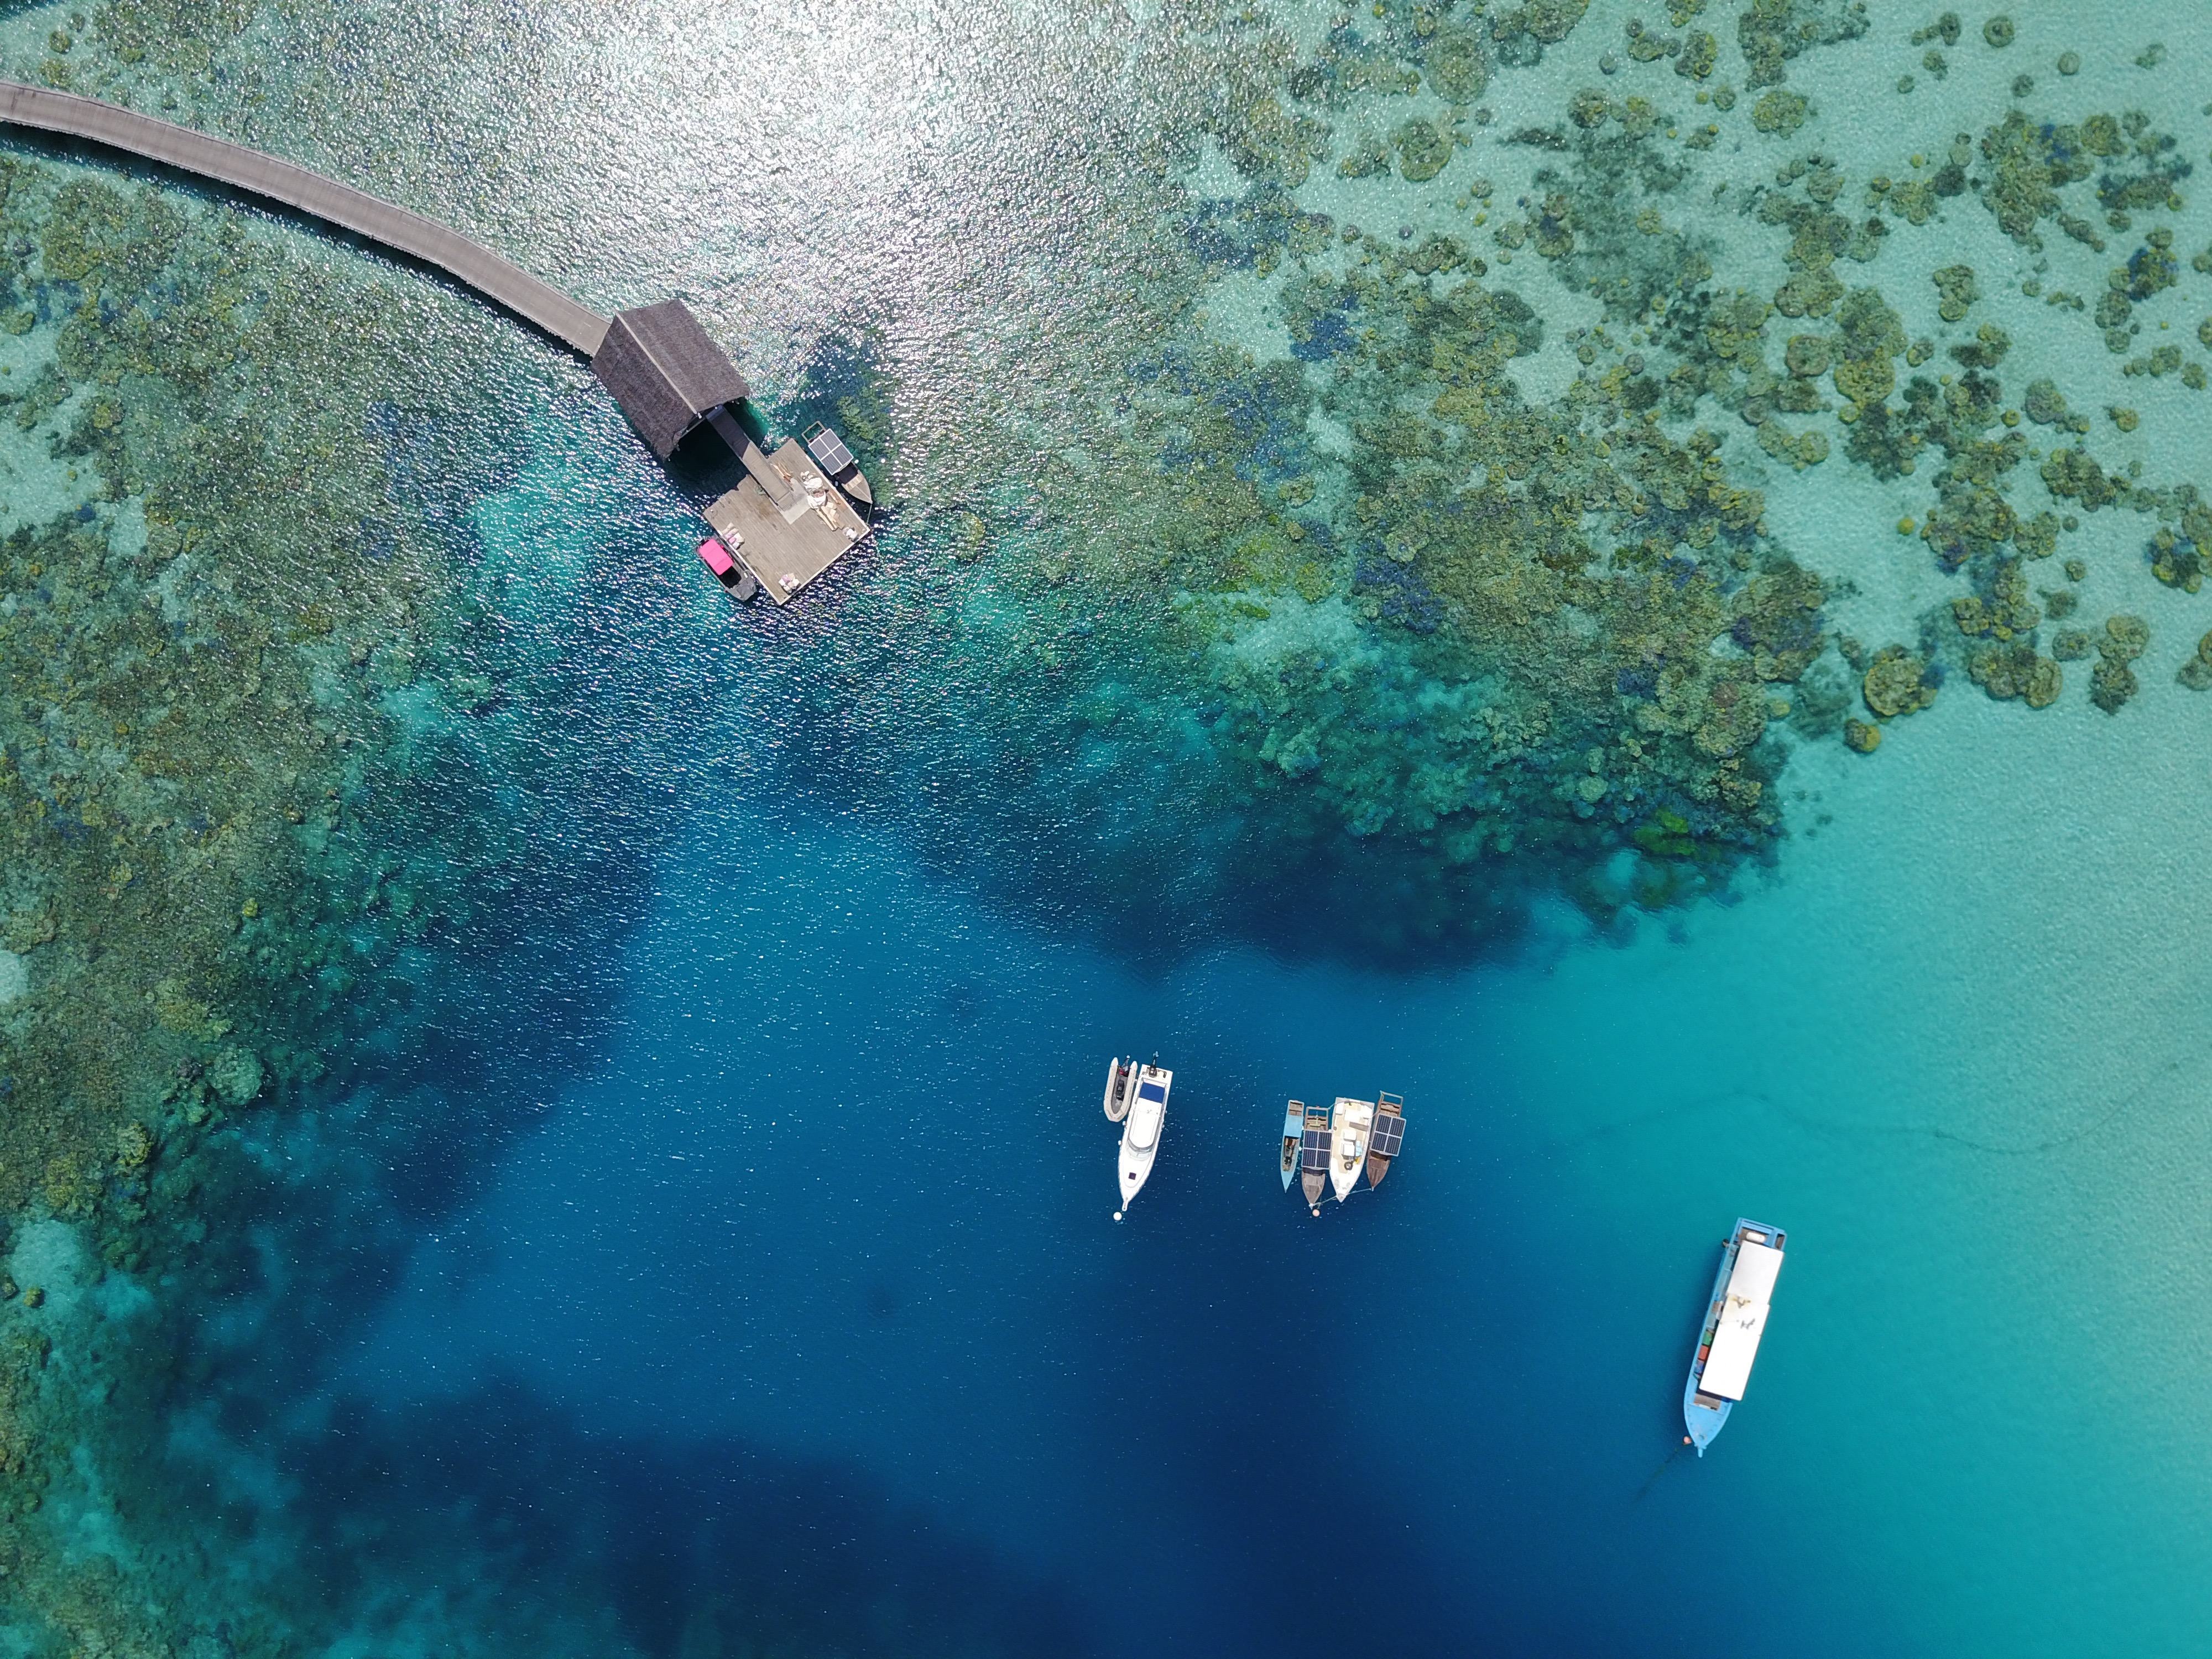 aerial_boats_in_coral_reefs_lagoon_jetty_thatched_roof (2)